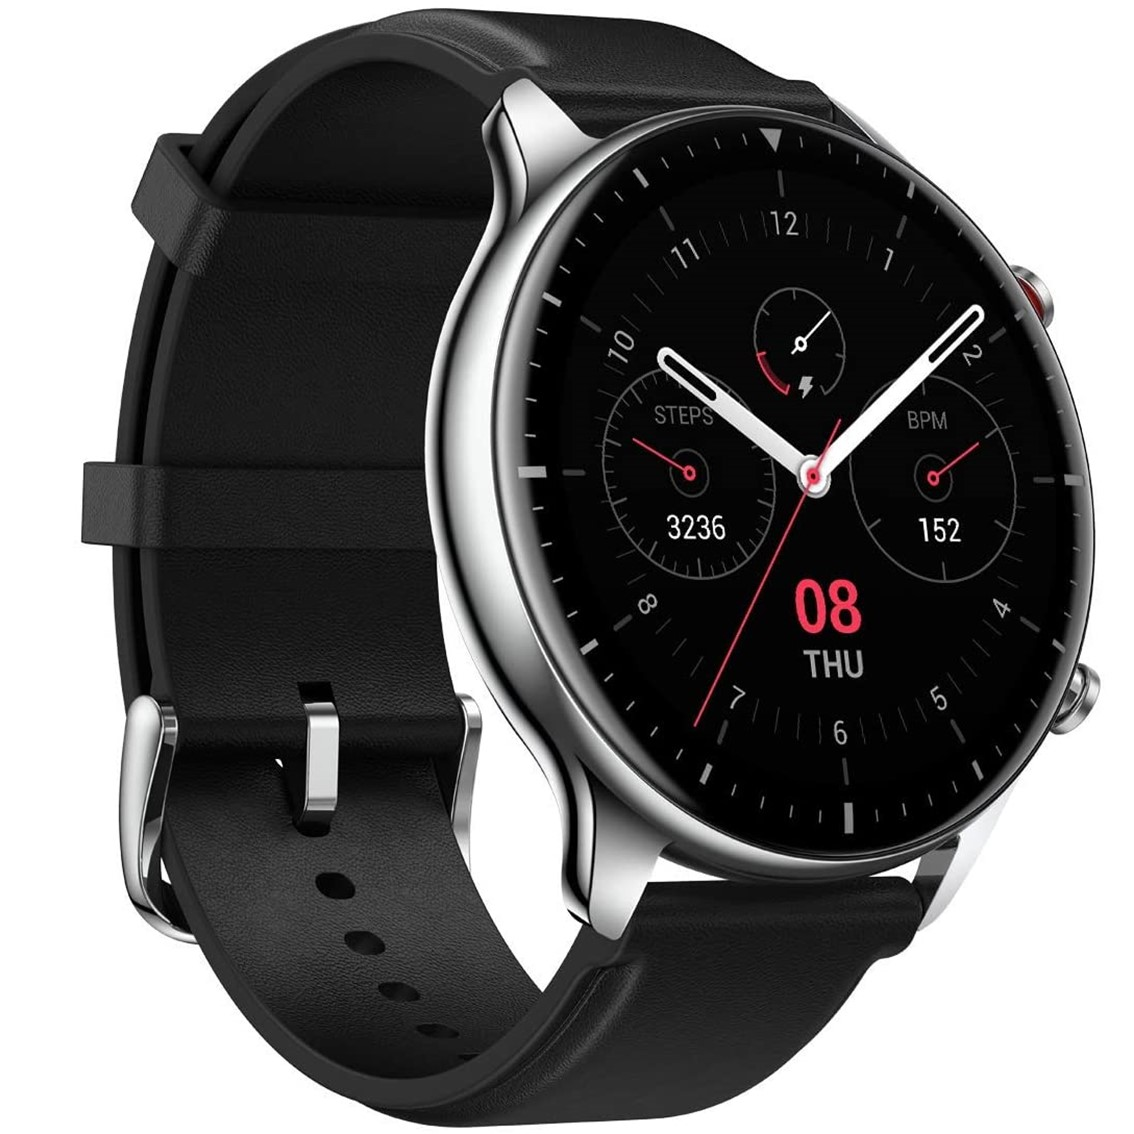 "PULSERA RELOJ DEPORTIVA AMAZFIT GTR 2 / 47MM OBSIDIAN BLACK / CLASSIC EDITION STAINLESS STELL/ SMARTWATCH 1.39""/ BLUETOOTH/ AMOLED"